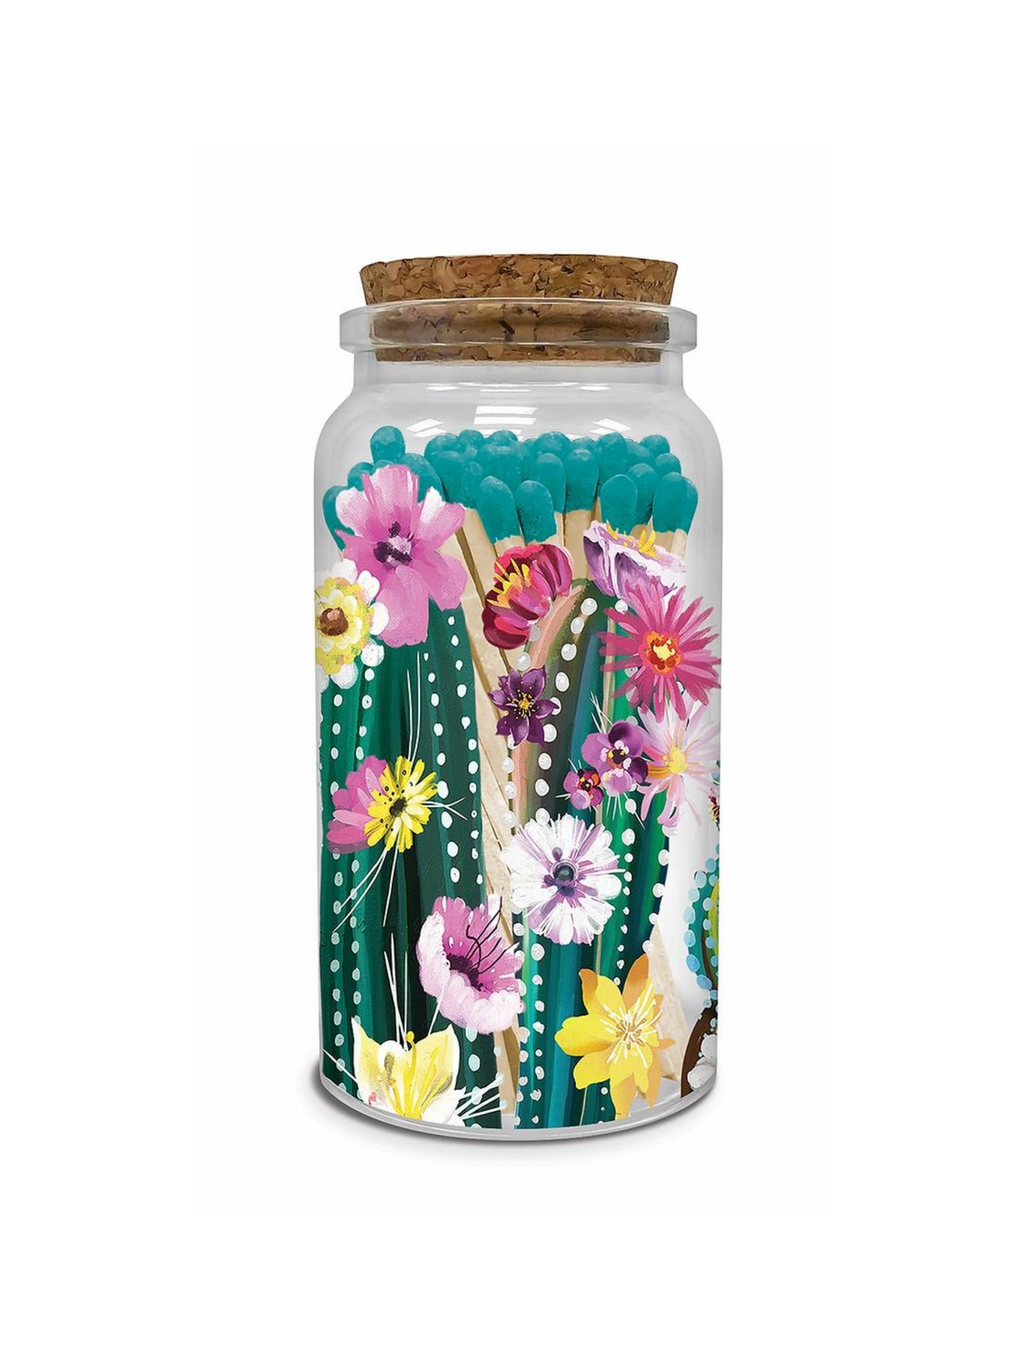 Decorative Matches & Jar - Desert Blossoms